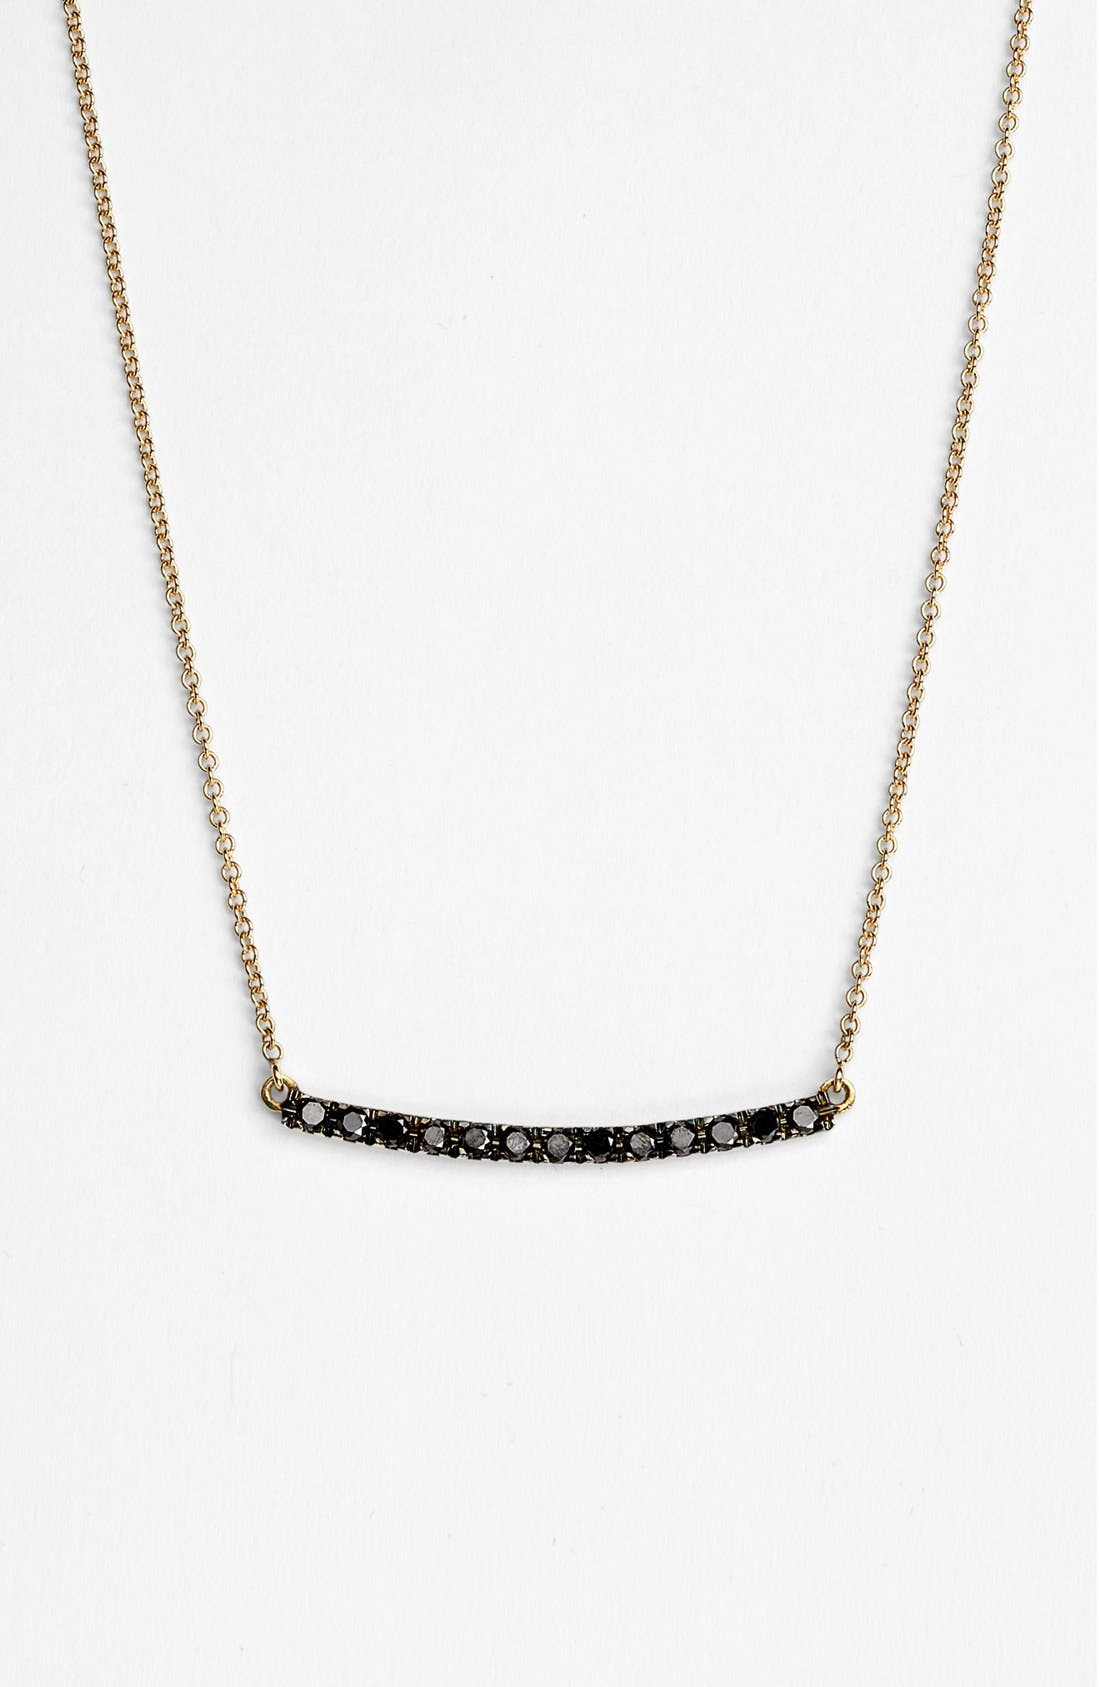 Main Image - Bony Levy 'Stick' Pavé Black Diamond Bar Necklace (Nordstrom Exclusive)